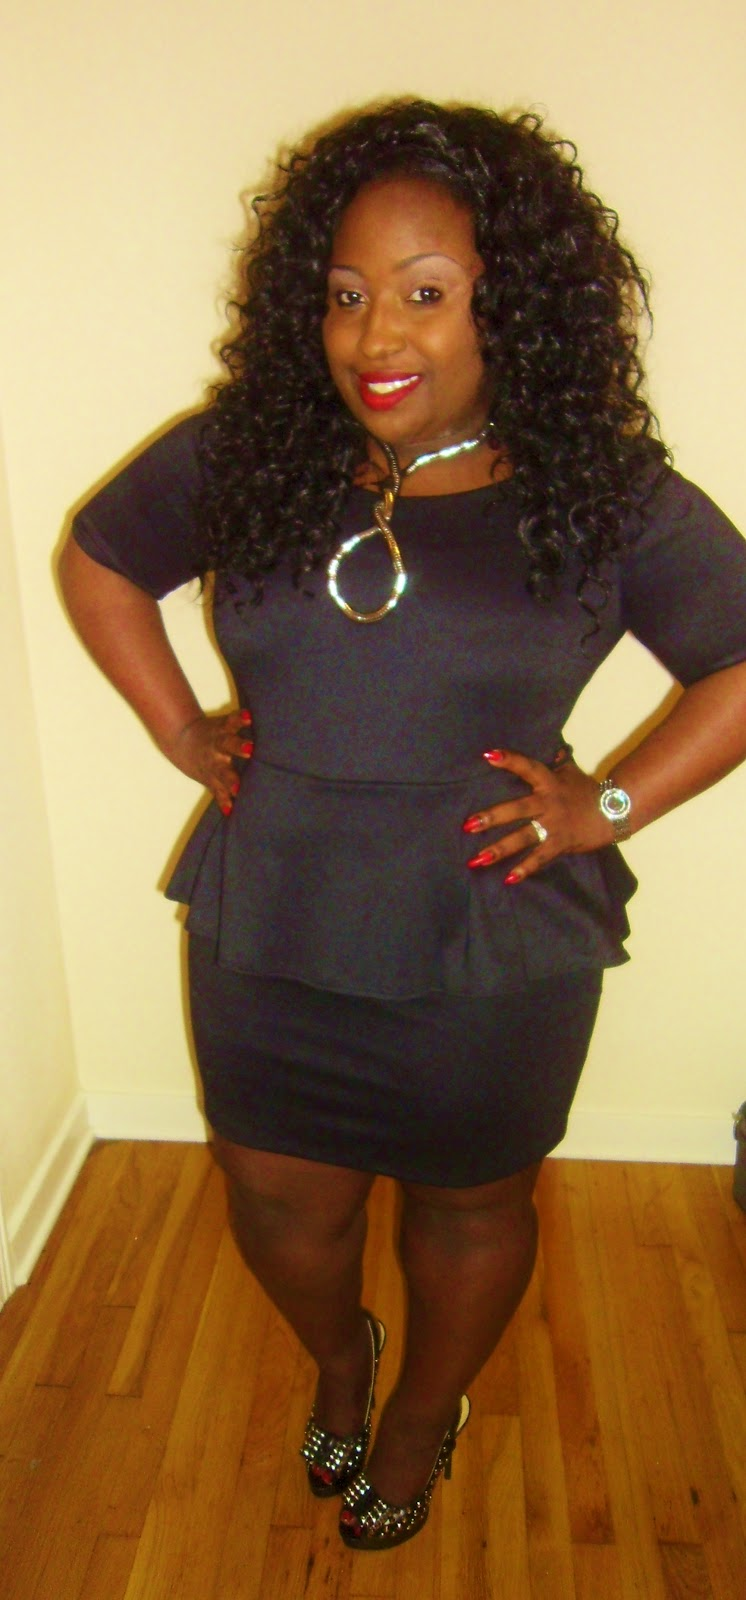 Style 4 Curves For The Curvy Confident Woman Spikeparty